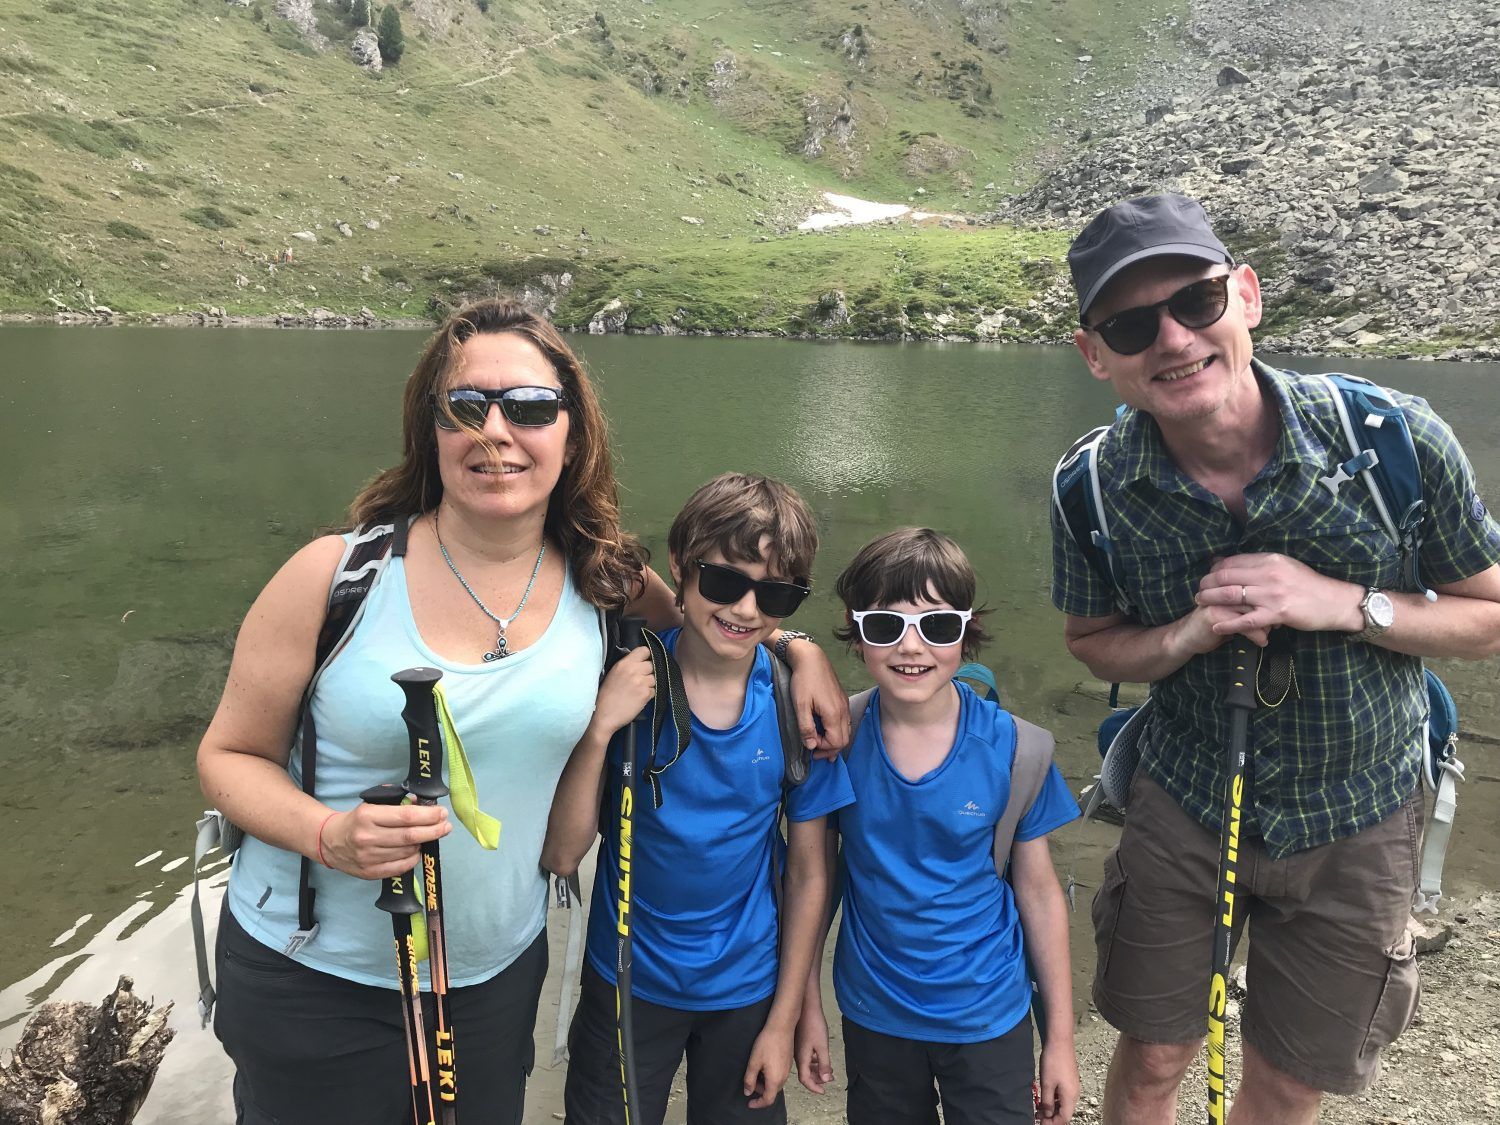 The family by Lago Chamolé in Pila, Aosta Valley. Your shopping guide to mountain hiking apparel and equipment.